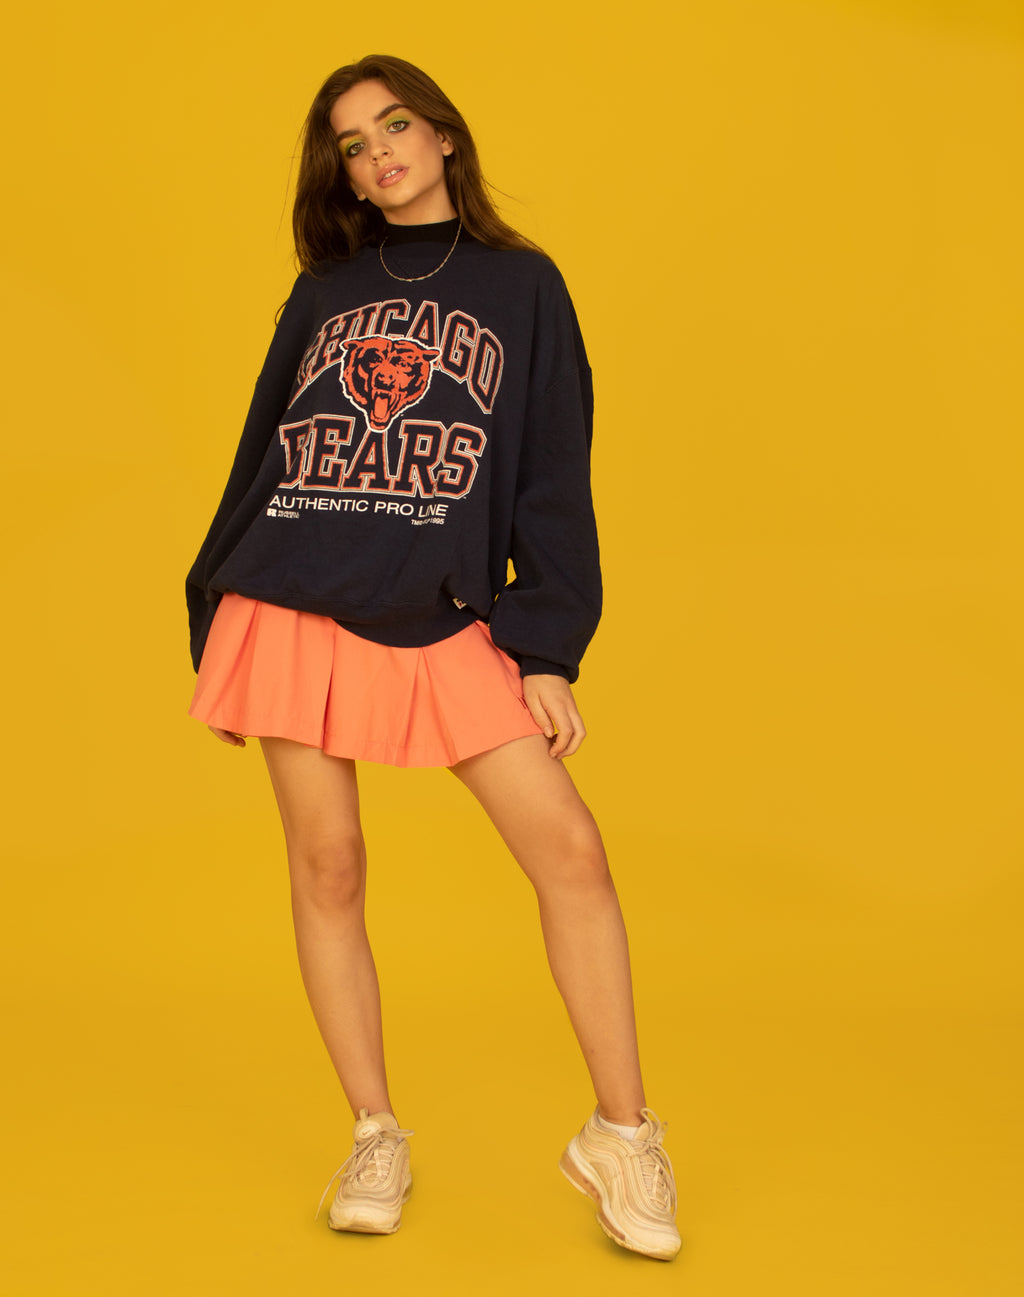 CHICAGO BEARS GRAPHIC SWEATER